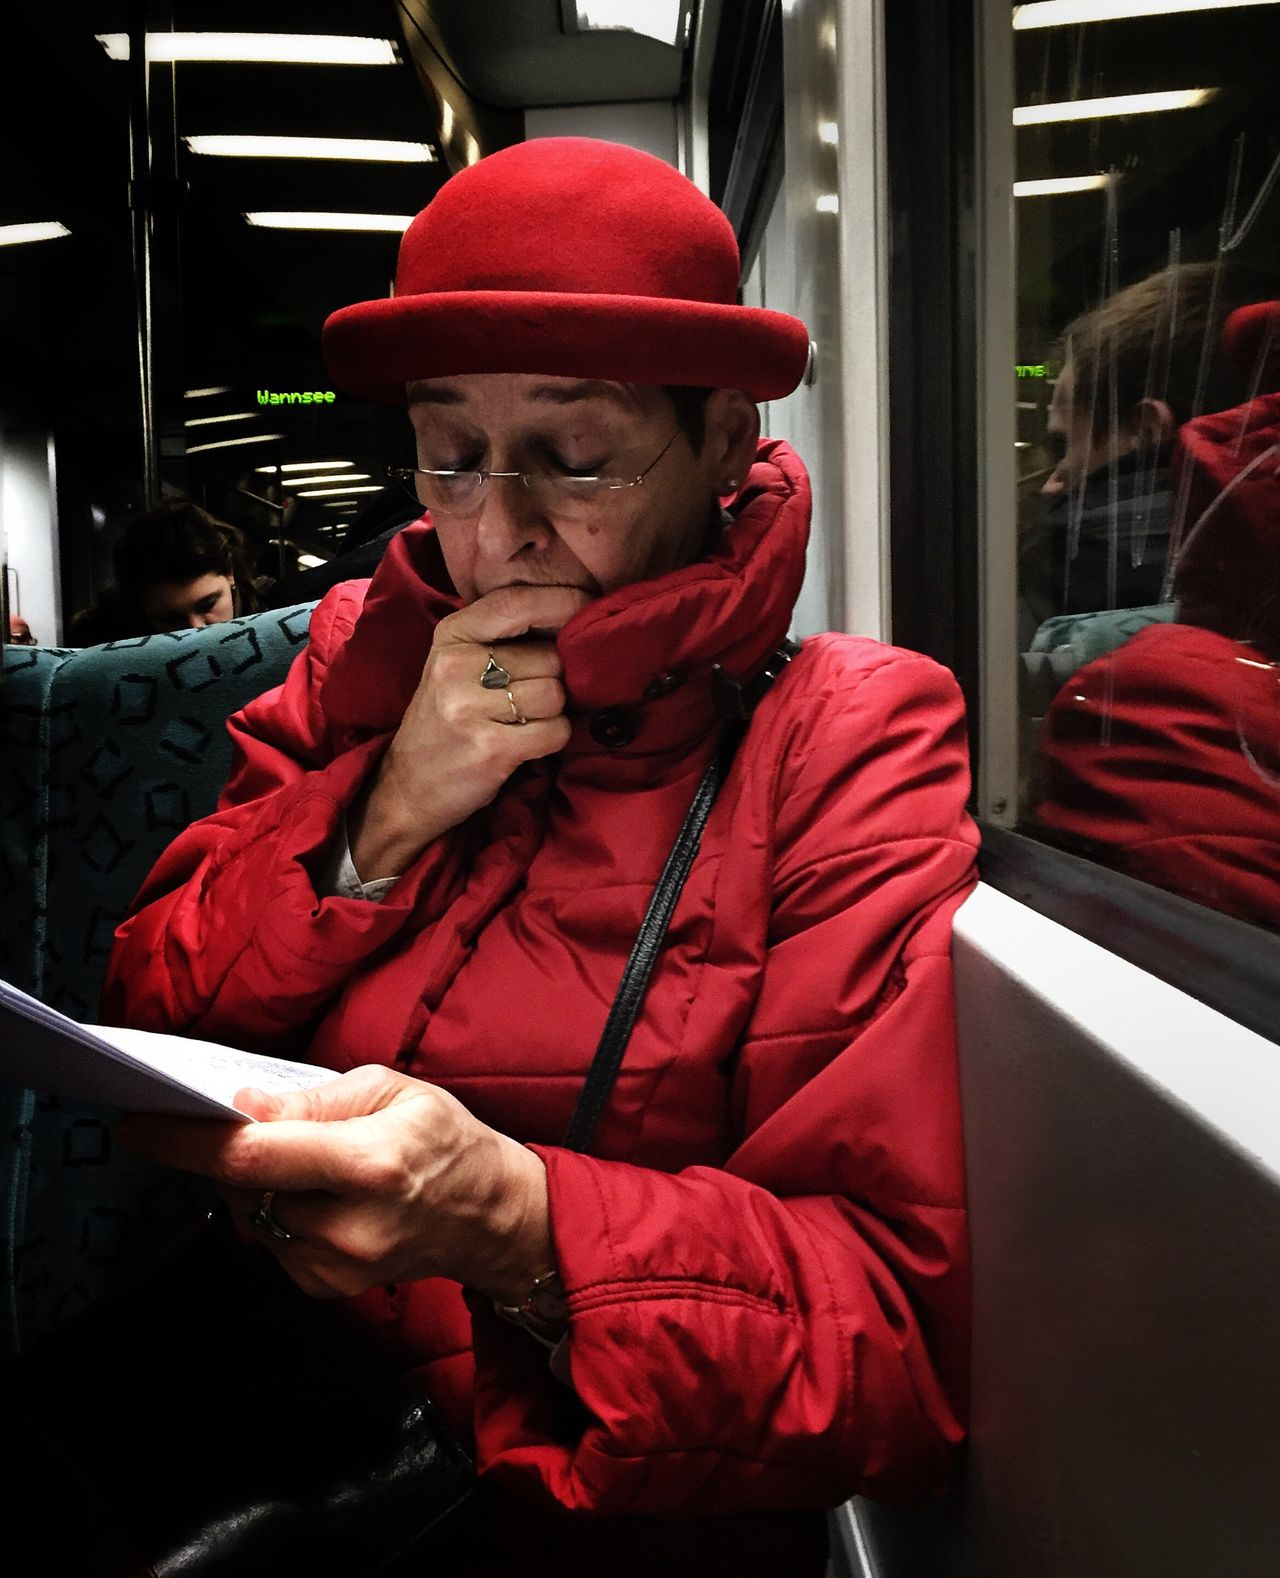 Streetphotography StreetPortraits Public Transportation Berlin Red Reflection Iphone6 Mobilephotography